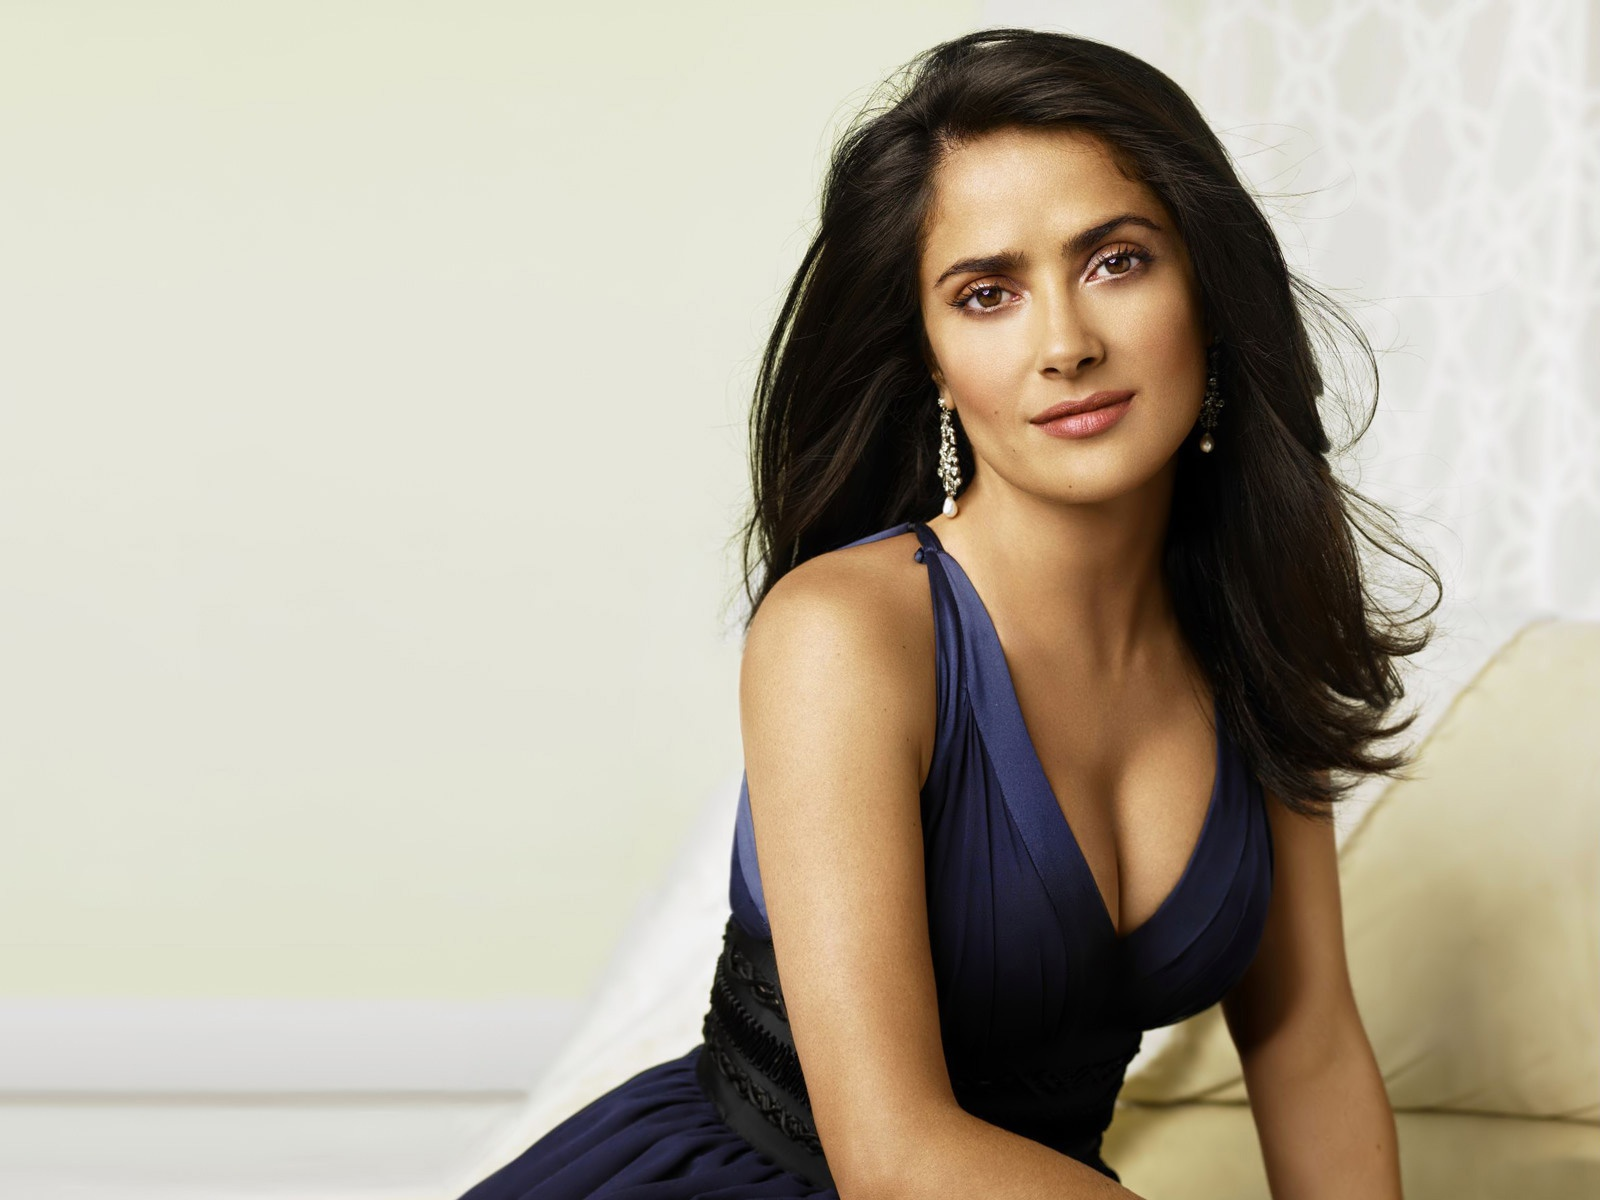 salma hayek wallpapers hd A1